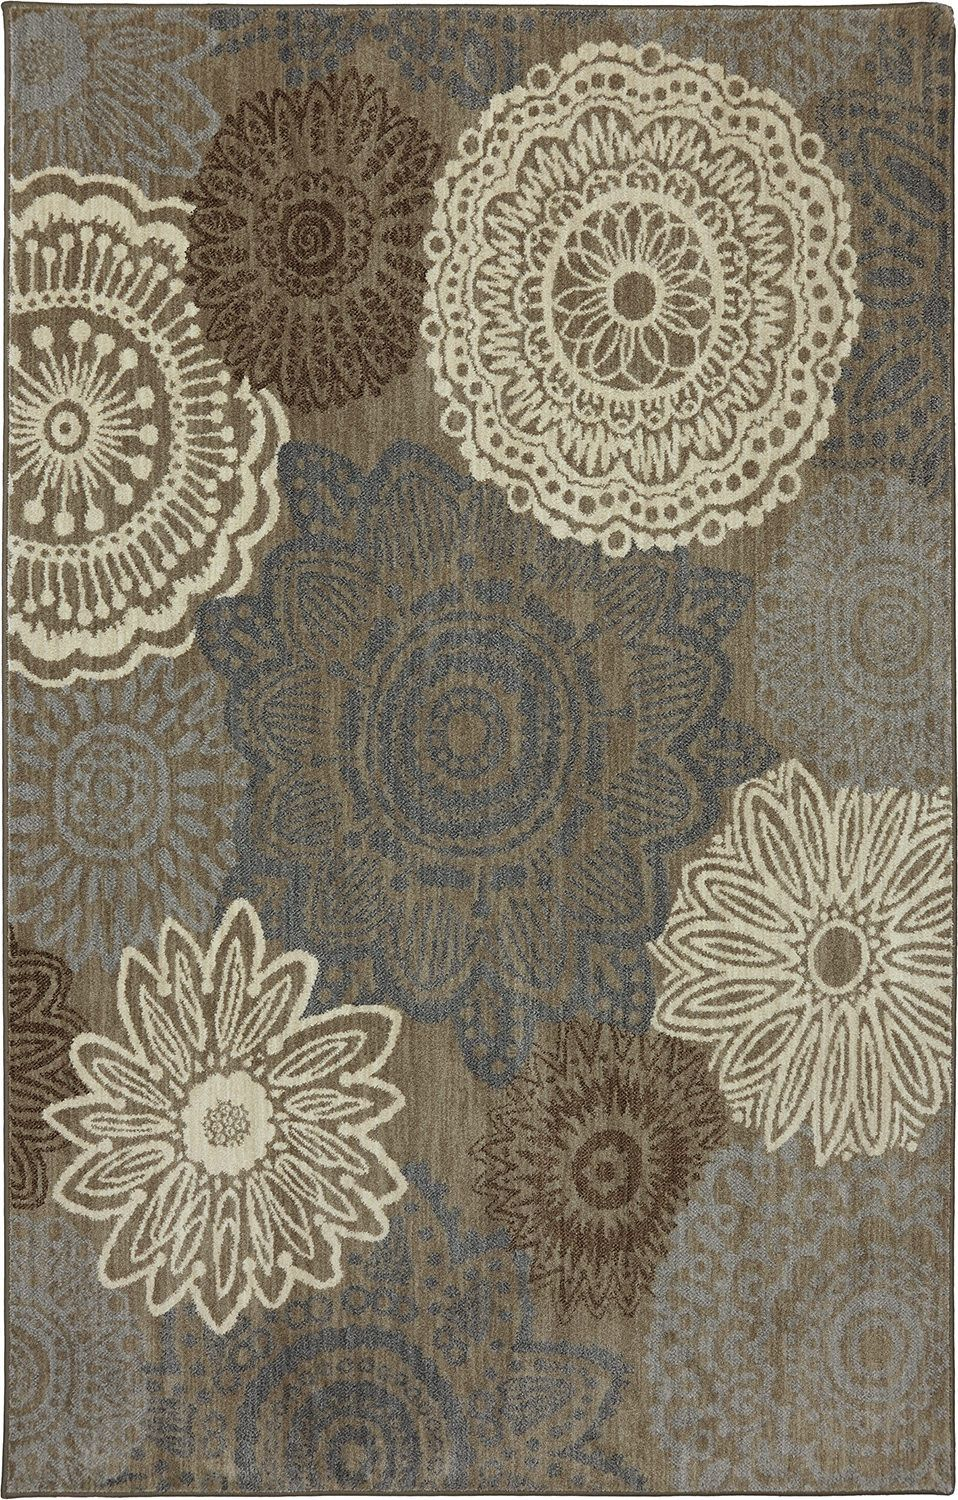 Dont Worry Its Smartstrand Smartstrand Is The Only Rug Fiber With Built In Stain Resistance That Will Never Wear Or Was Karastan Rugs Karastan Rugs On Carpet